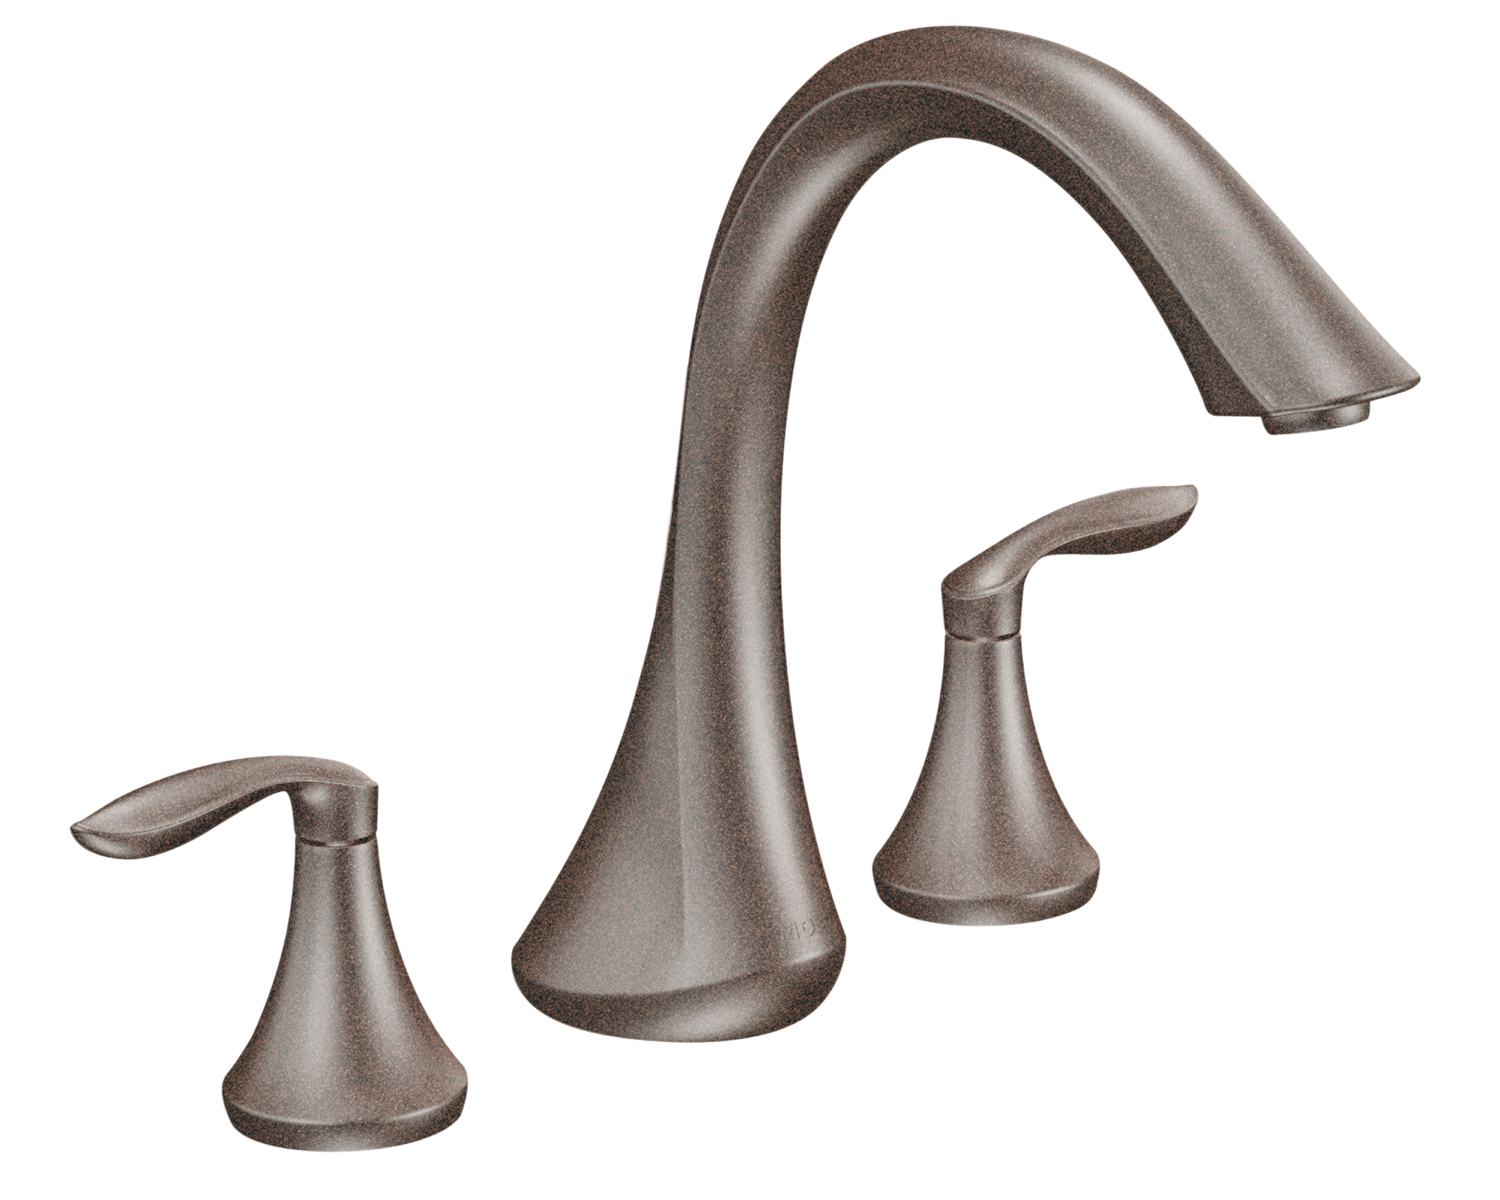 Moen t943orb eva two handle high arc roman tub faucet without valve oil rubbed bronze bathtub - Moen shower faucet ...